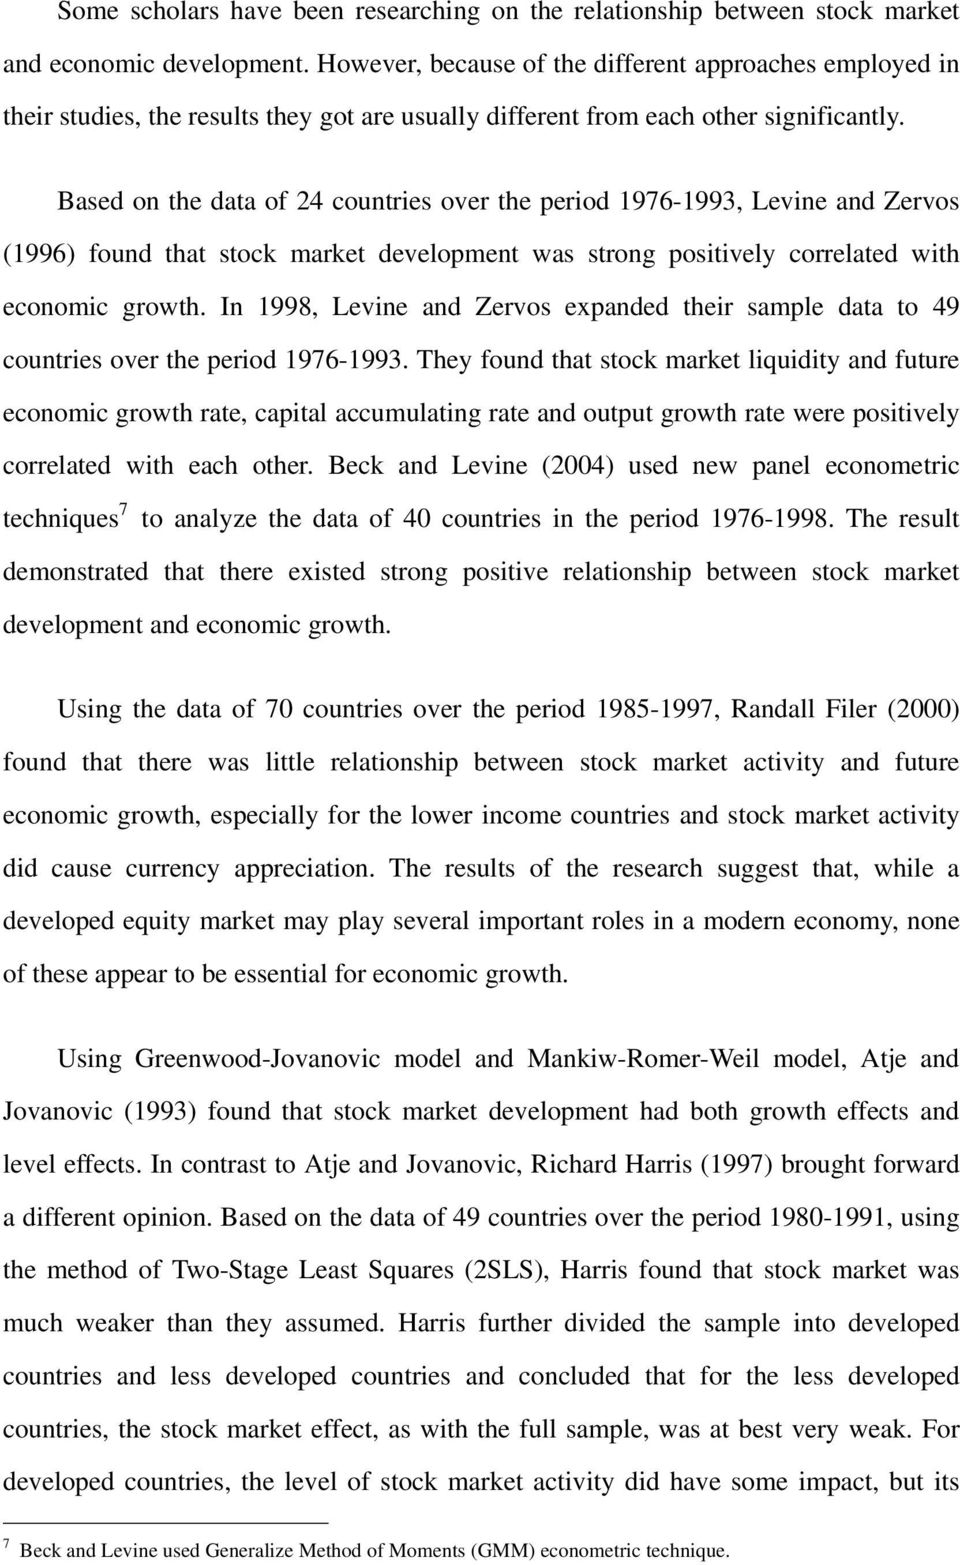 Based on the data of 4 countries over the period 976-993, Levine and Zervos (996) found that stock market development was strong positively correlated with economic growth.